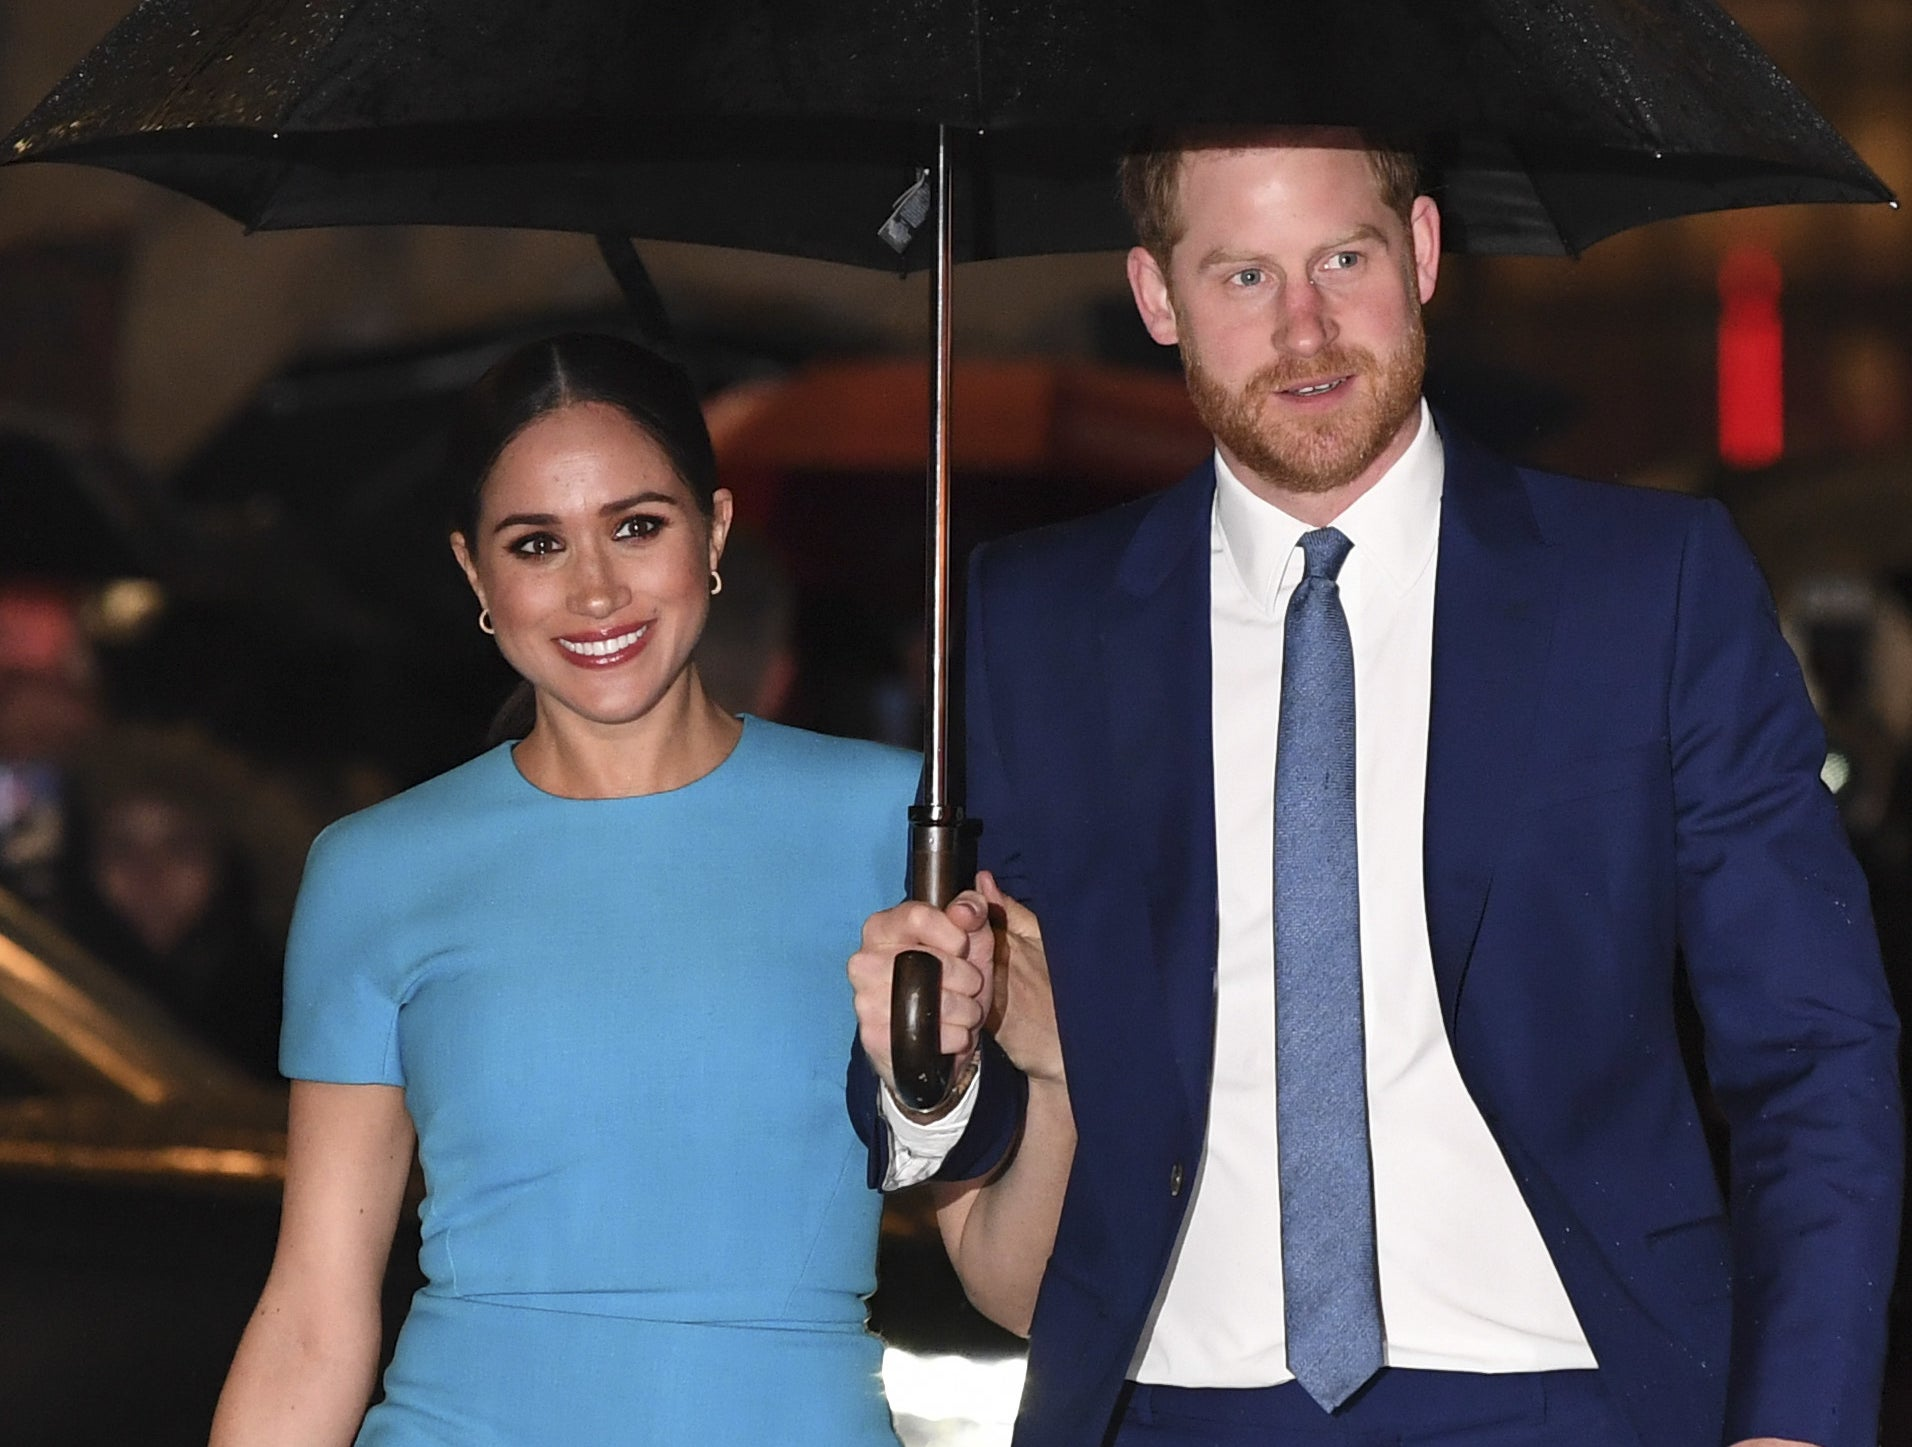 Meghan Markle and Prince Harry walking underneath an umbrella